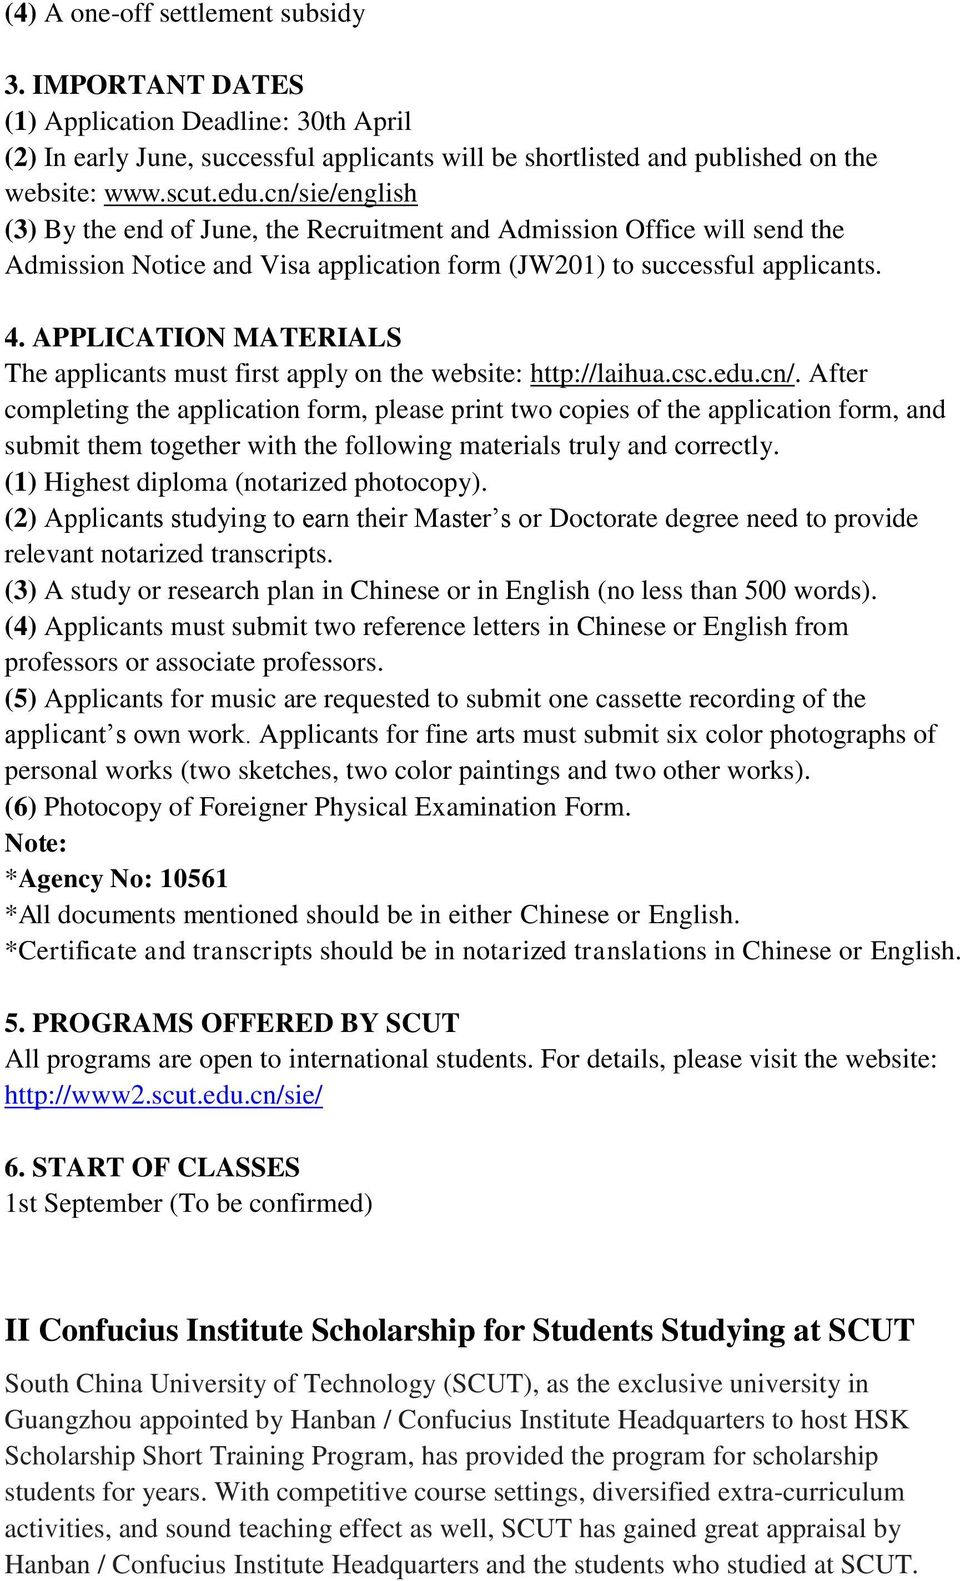 APPLICATION MATERIALS The applicants must first apply on the website: http://laihua.csc.edu.cn/.